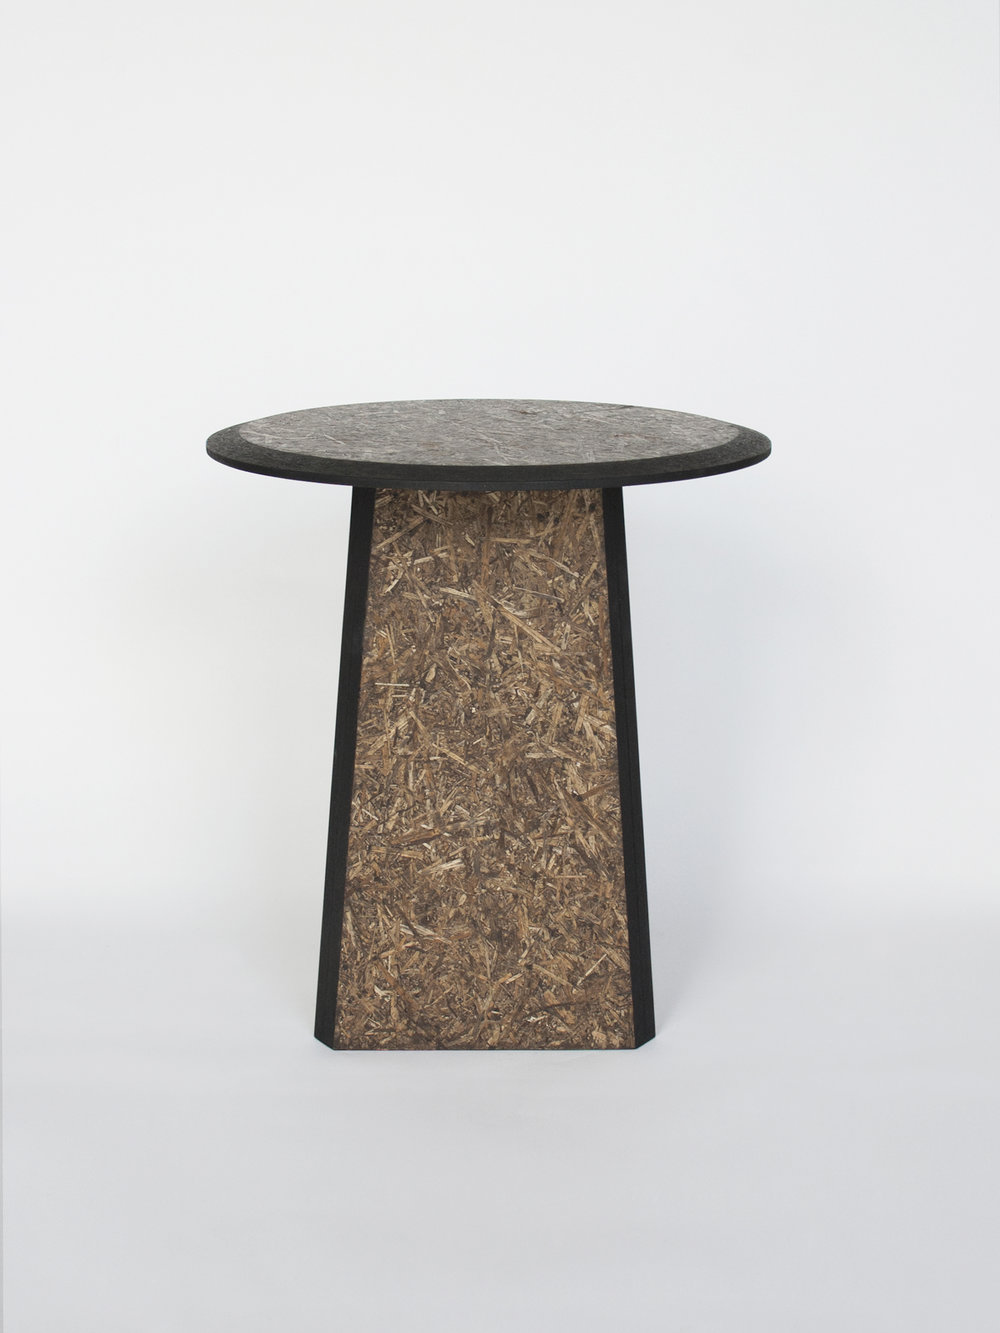 Straw sidetables -black_side view- David Derksen Design.jpg